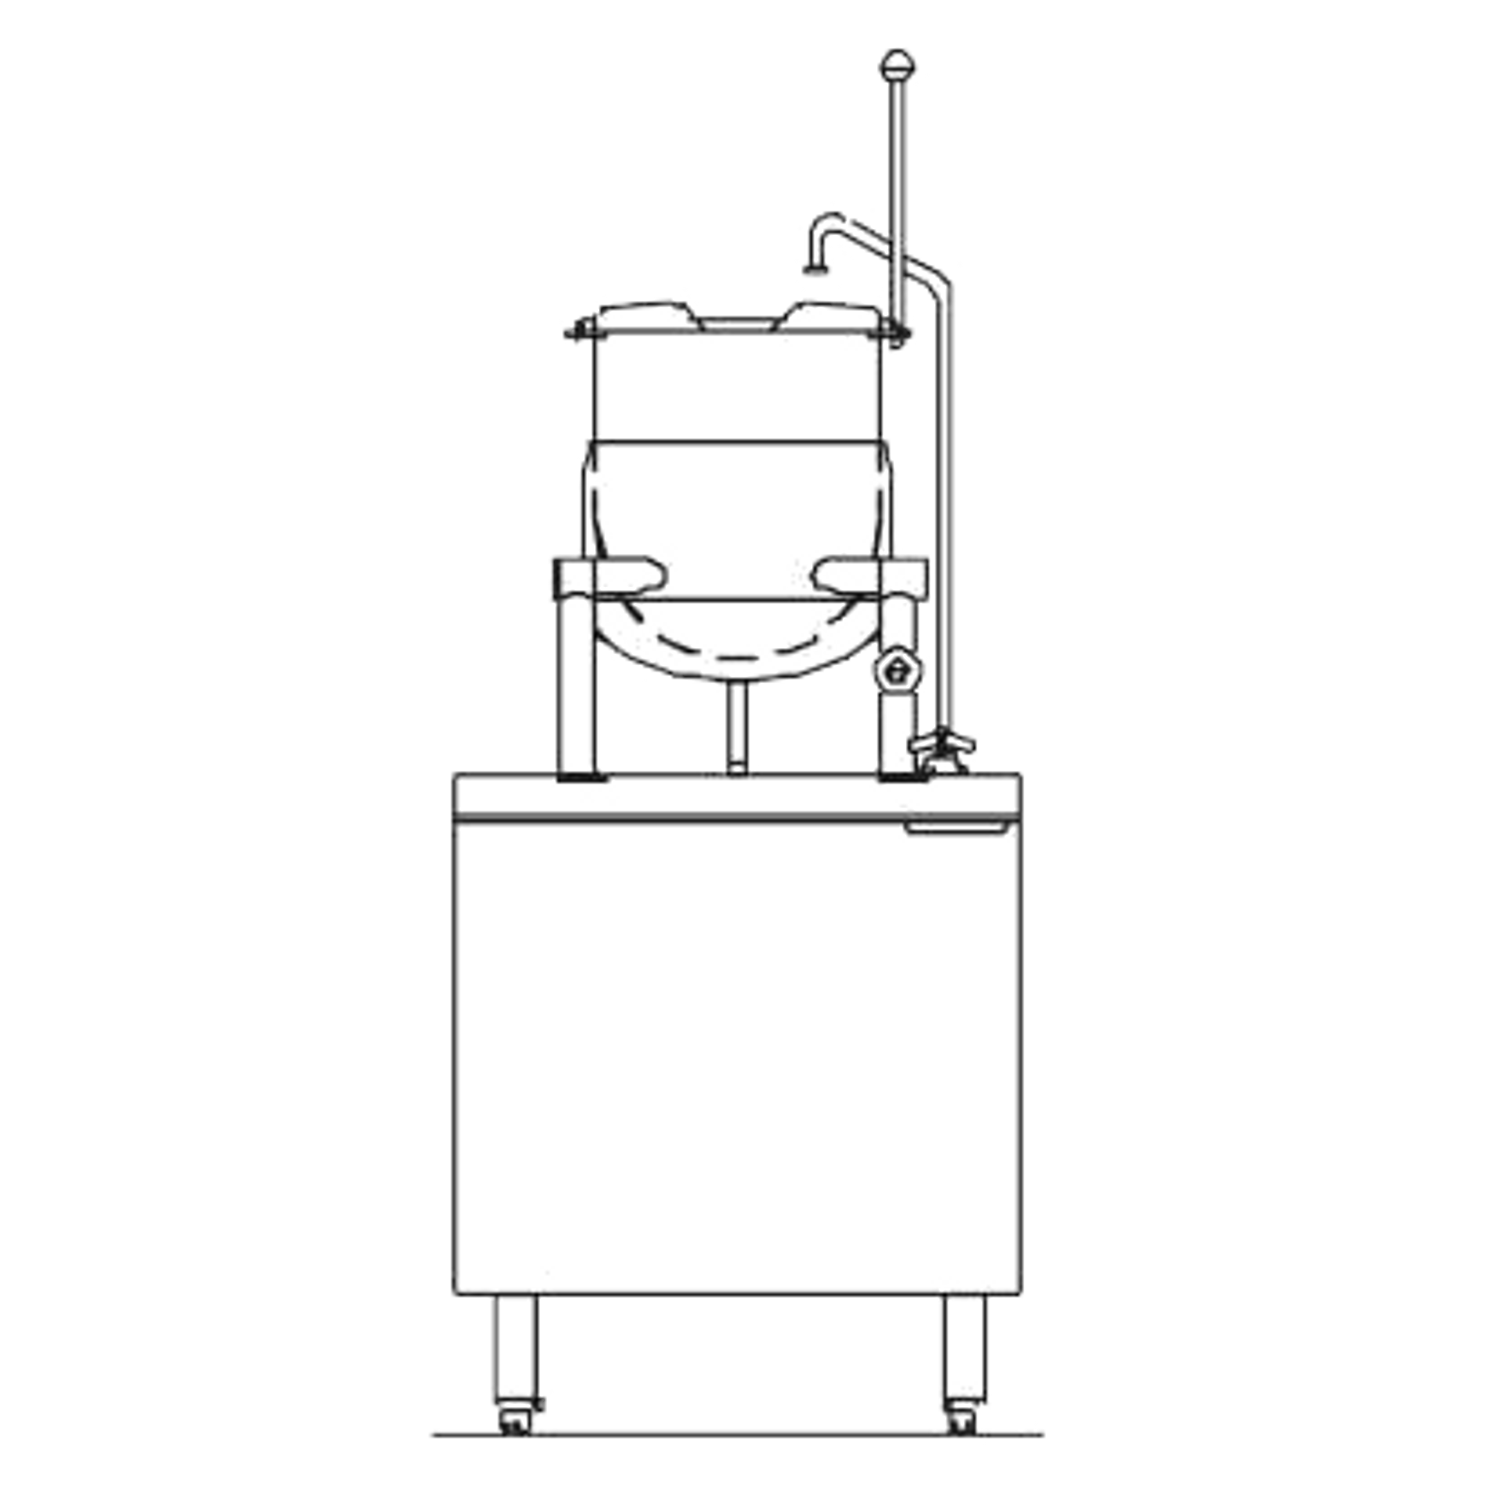 "Blodgett CB24D-10K Kettle/Stand Assembly, Direct-Steam, 24"" wide, (1) 10  gallon kettle, stainless steel exterior"